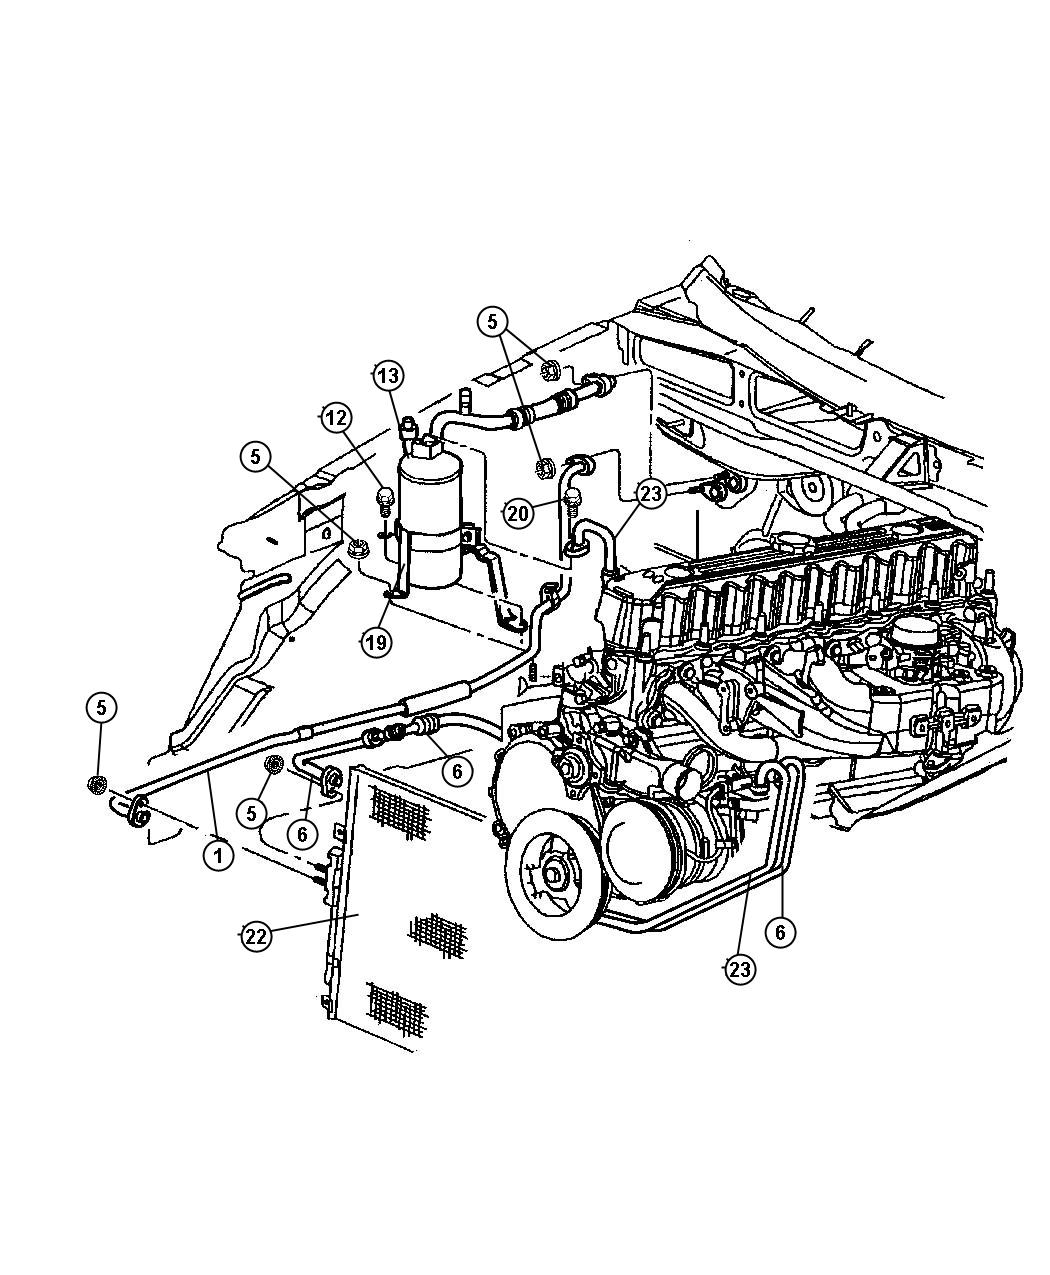 [DIAGRAM] Wiring Diagram For A Jeep Grand Cherokee FULL